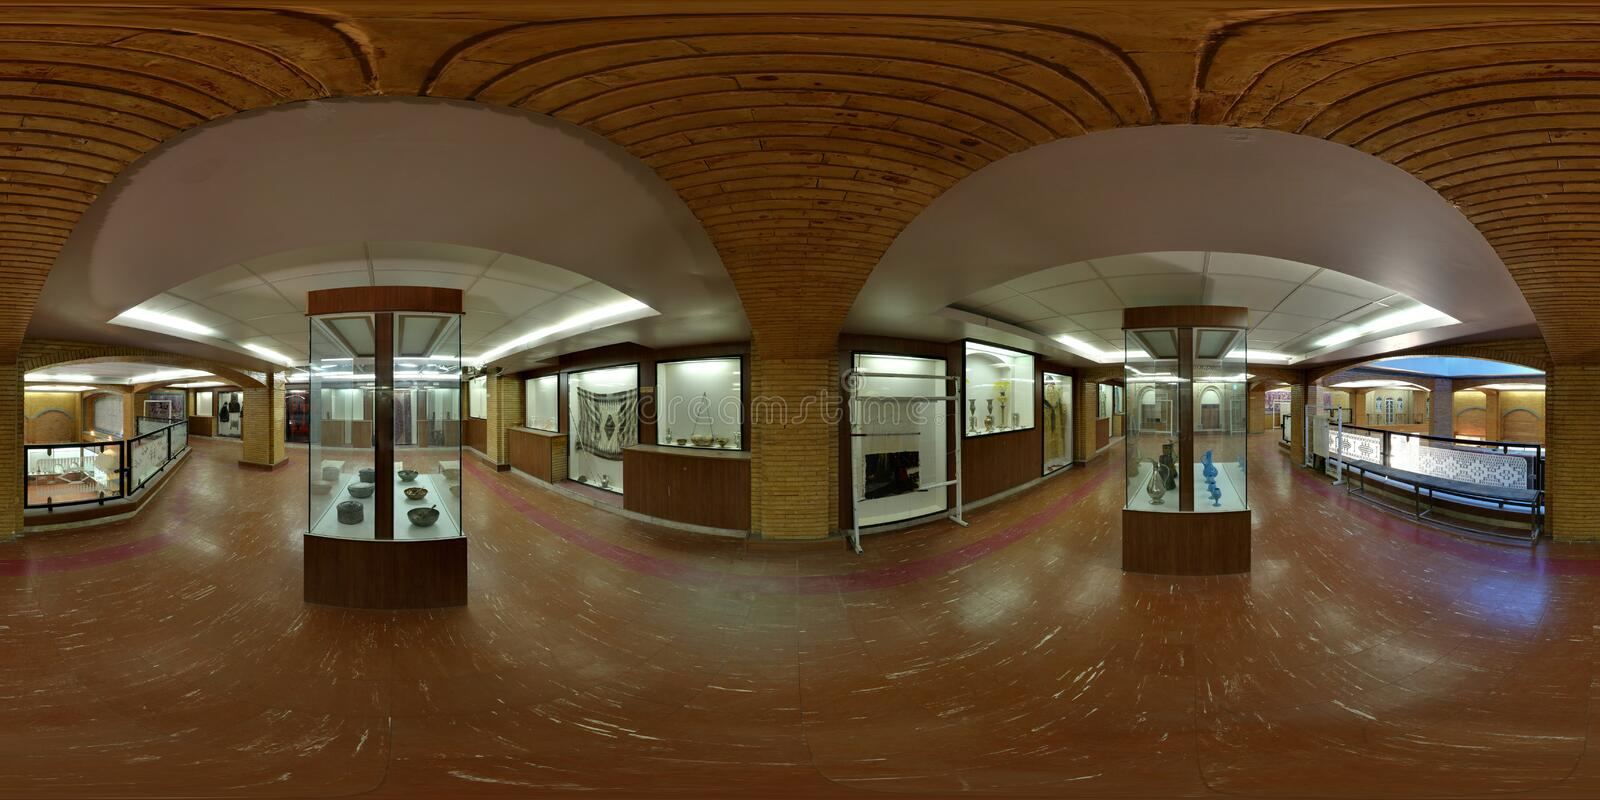 Middle East archaeological cultural museum galleries in Iran - wide angle expanded view royalty free stock images